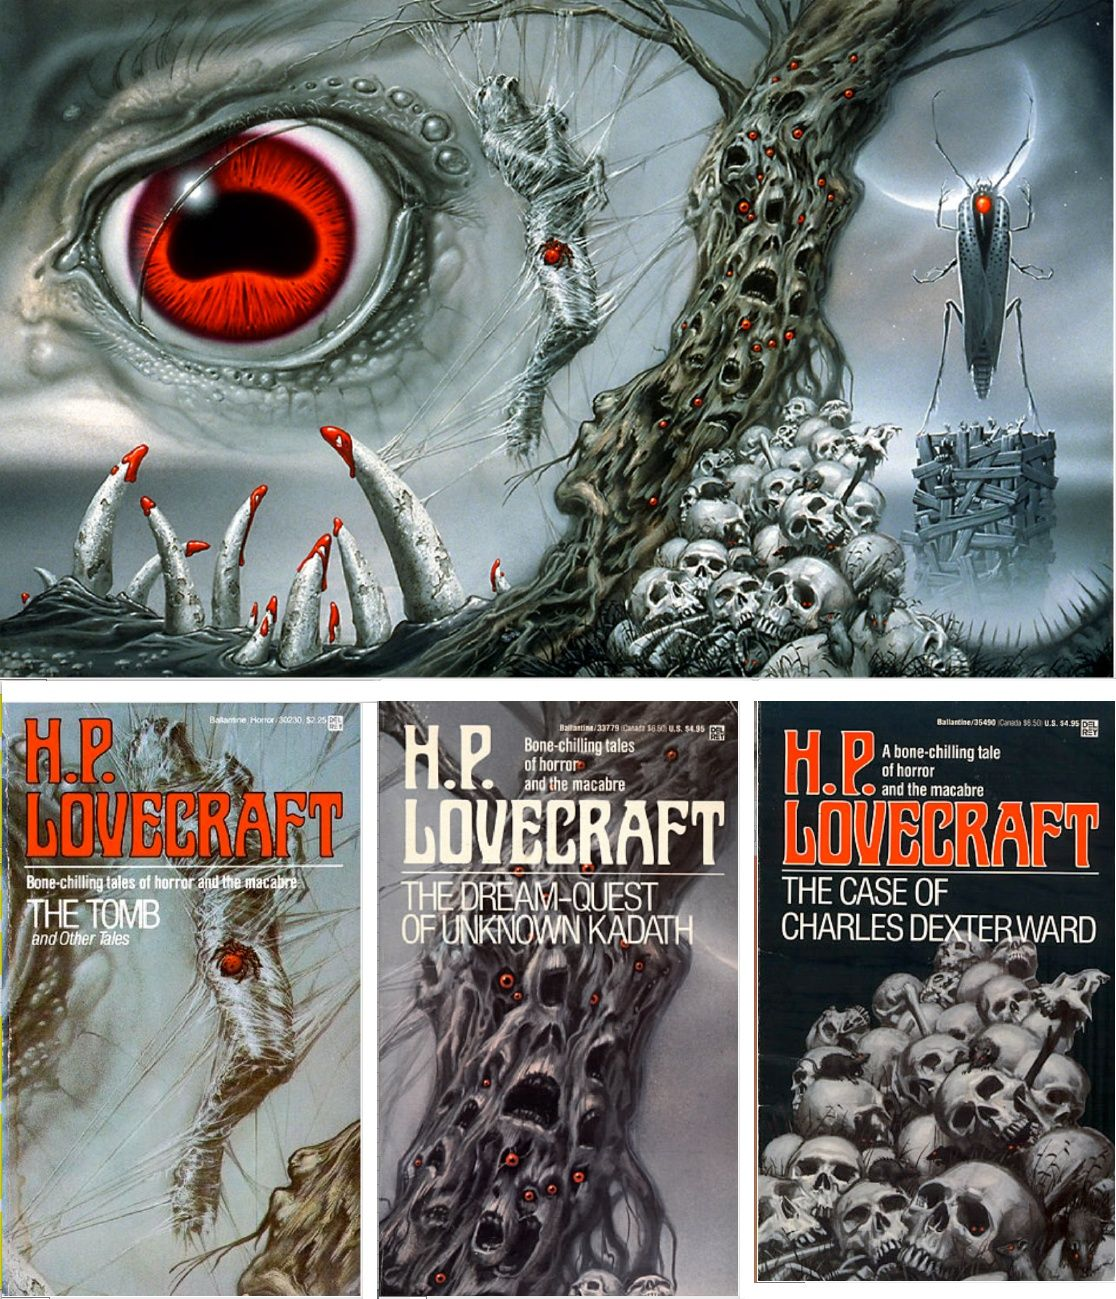 H.P. Lovecraft Books